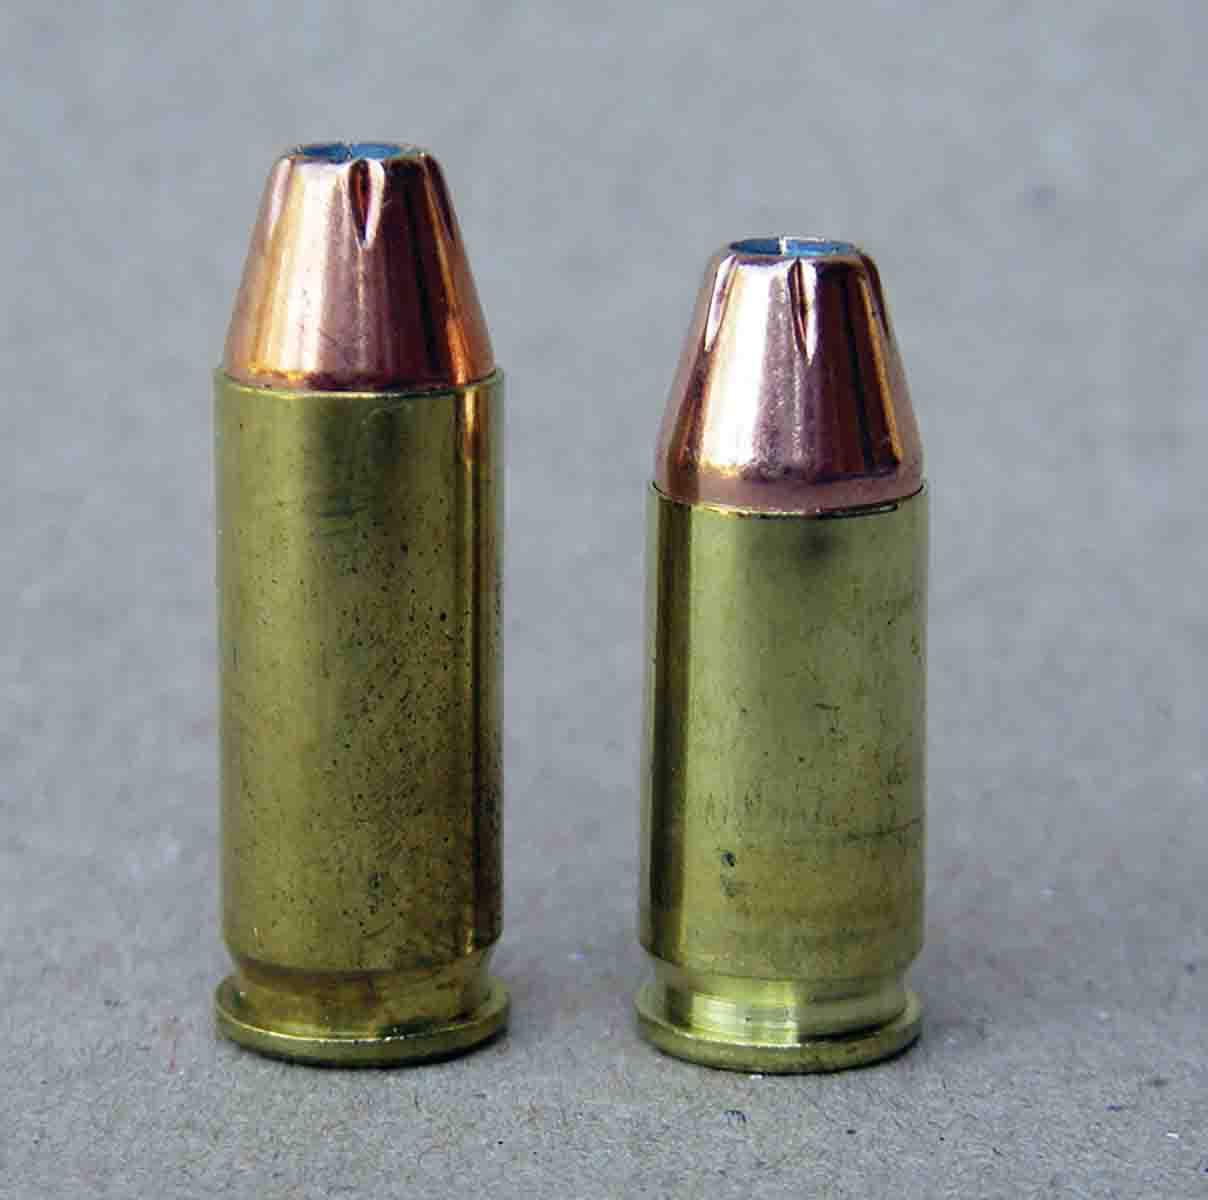 The .38 Super (left) offers a notable powder capacity increase over the 9mm Luger (right), resulting in substantial velocity increases.